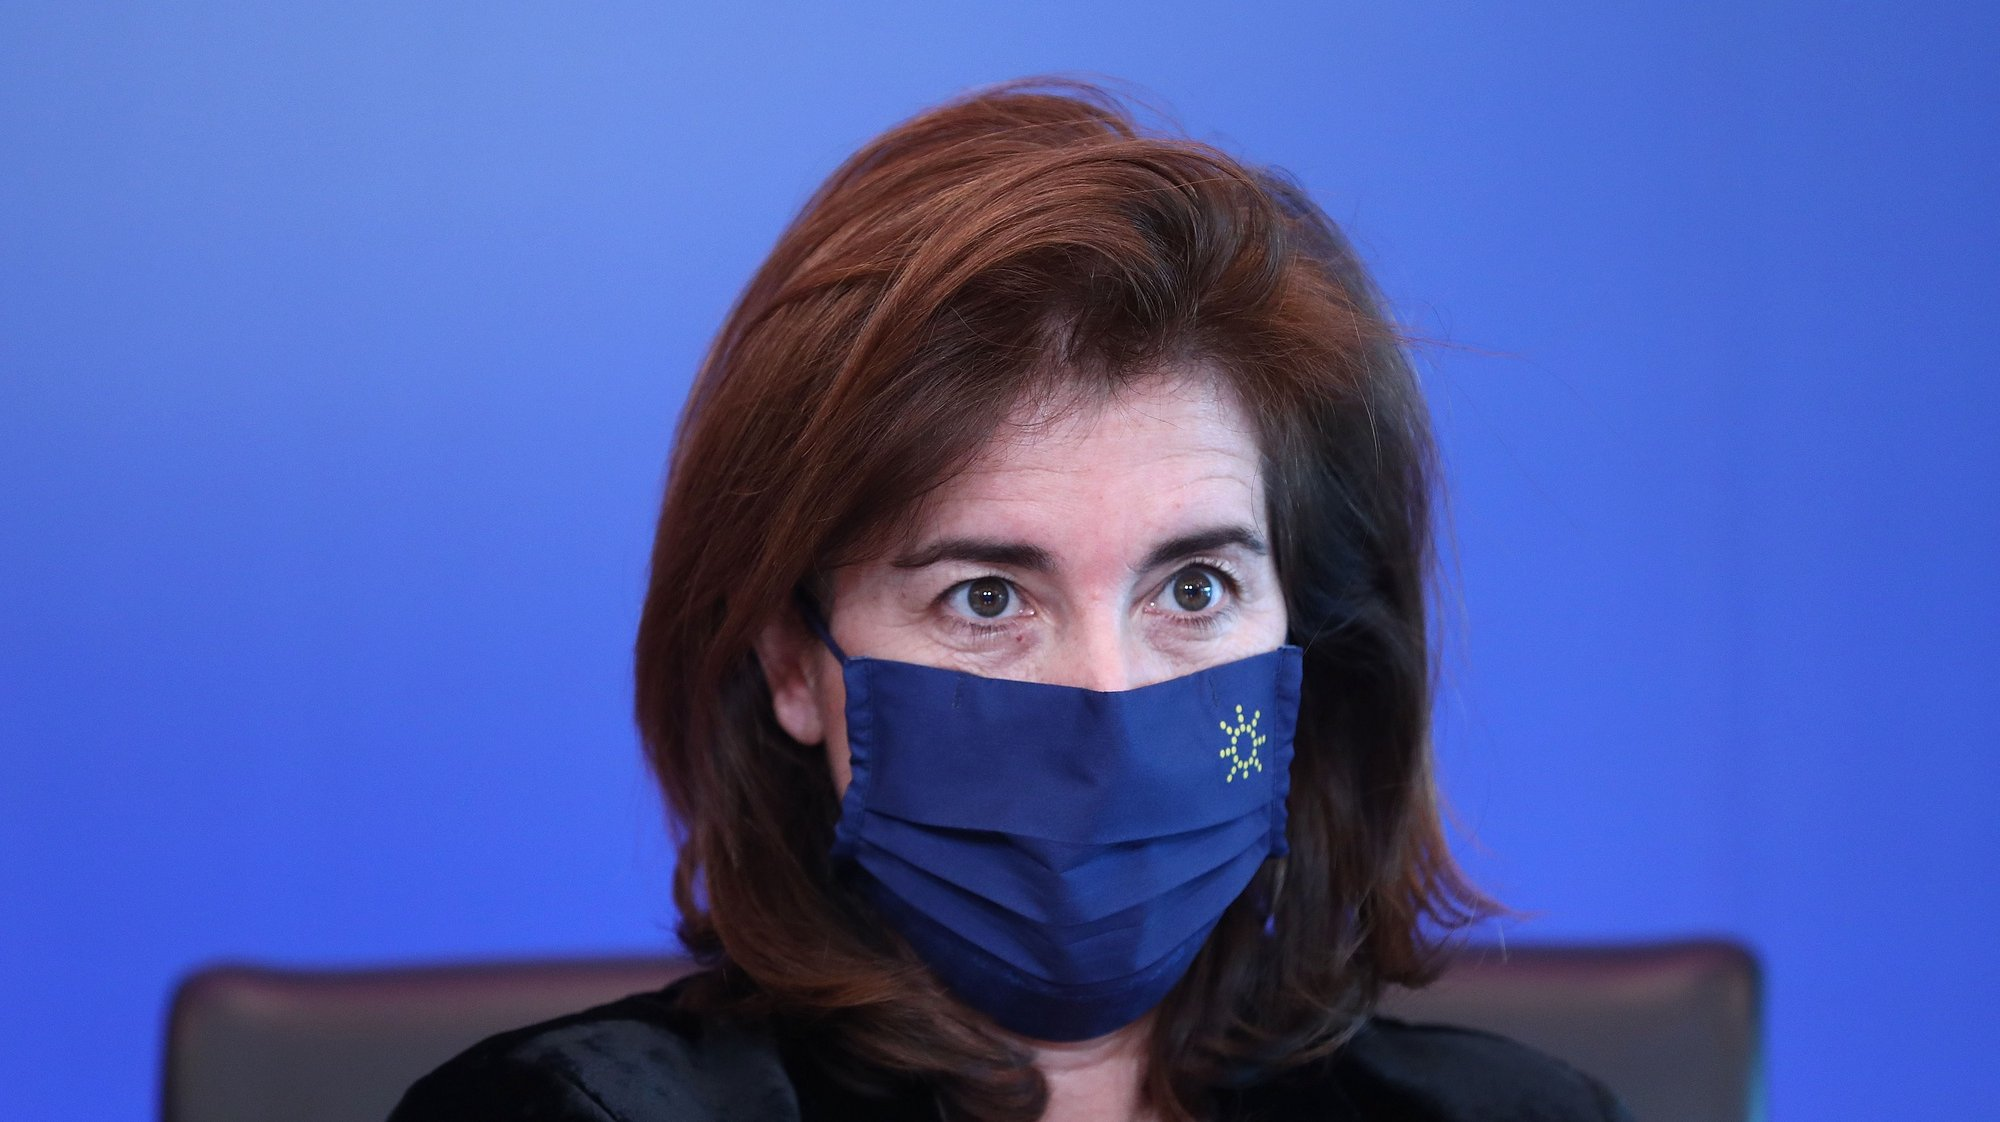 Portuguese Minister of Labour, Solidarity and Social Security, Ana Mendes Godinho during a virtual visit of journalists included in the official program of the Portuguese Presidency of the Council of the European Union in Lisbon, Portugal, 07 January 2021. During the first half of this year, Portugal will have its fourth presidency after 1992, 2000 and 2007. ANTÓNIO PEDRO SANTOS/LUSA